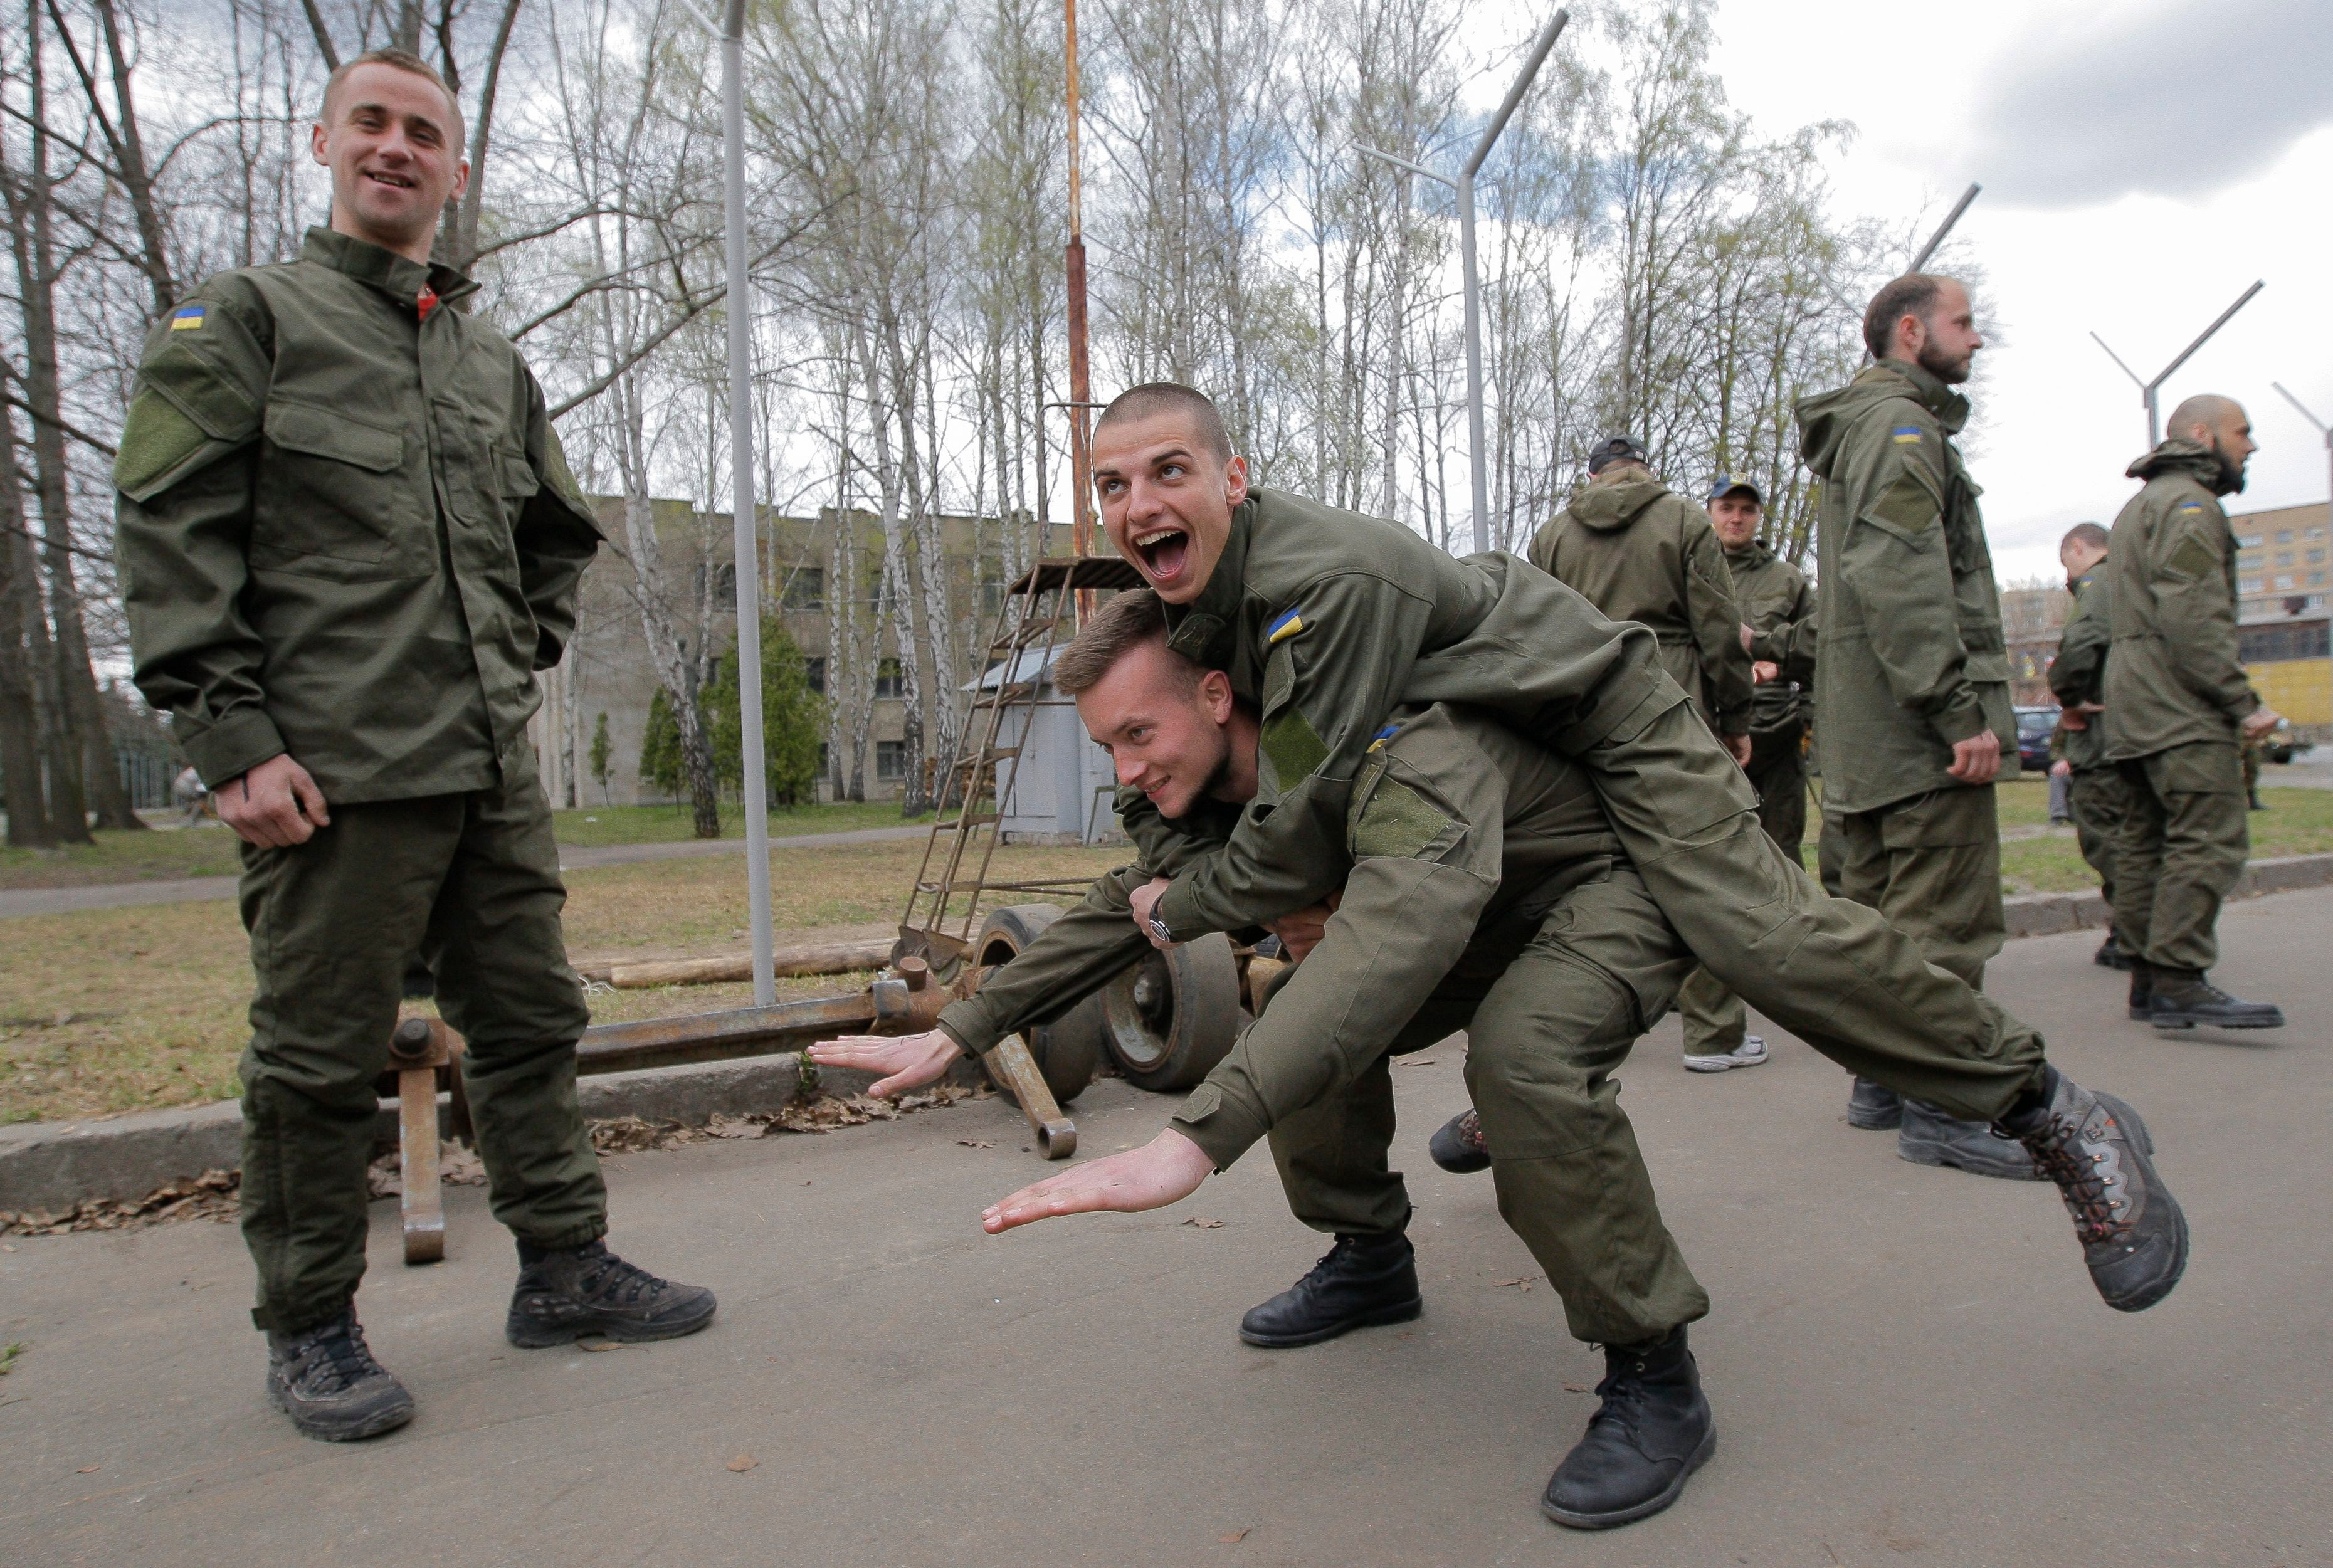 After finishing their training course, new recruits to the Ukrainian National Guard Azov Regiment goof around. (Photo: Dmitry Lipavskiy/EPA/Newscom)